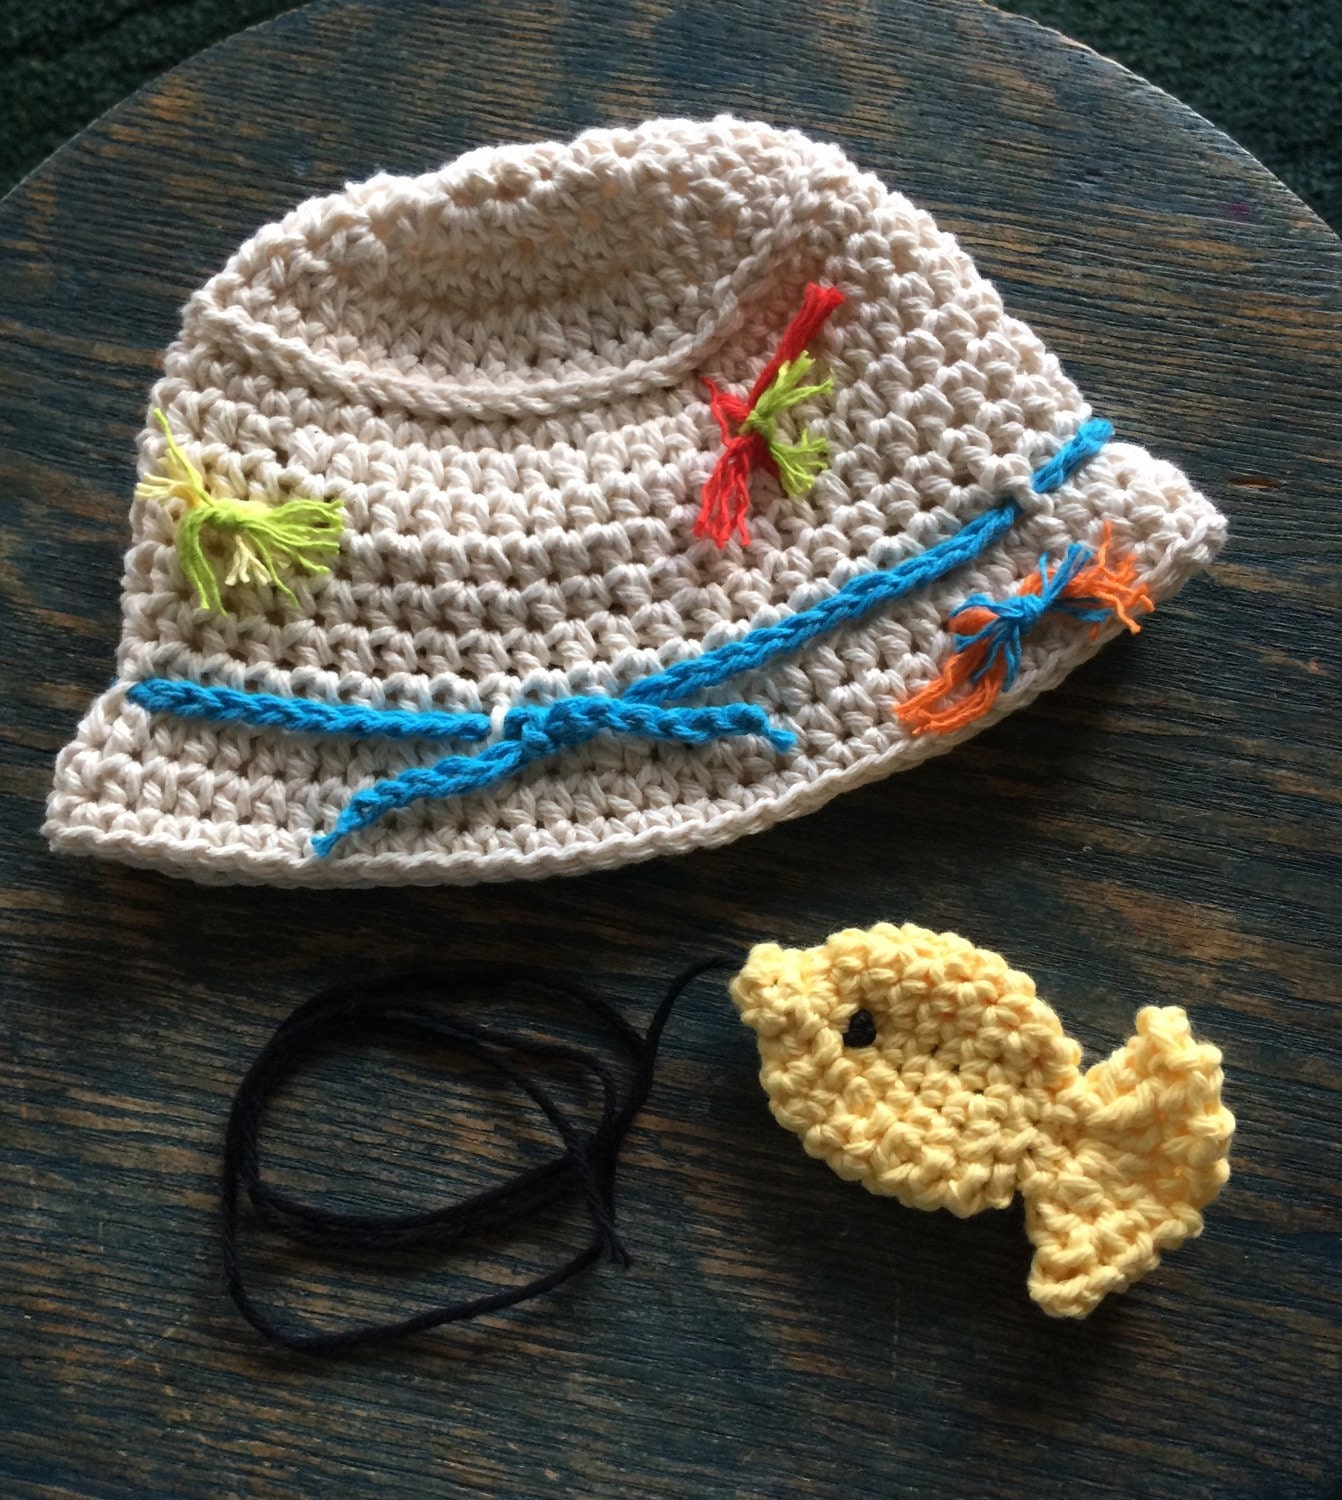 Find great deals on eBay for infant fishing hat. Shop with confidence.